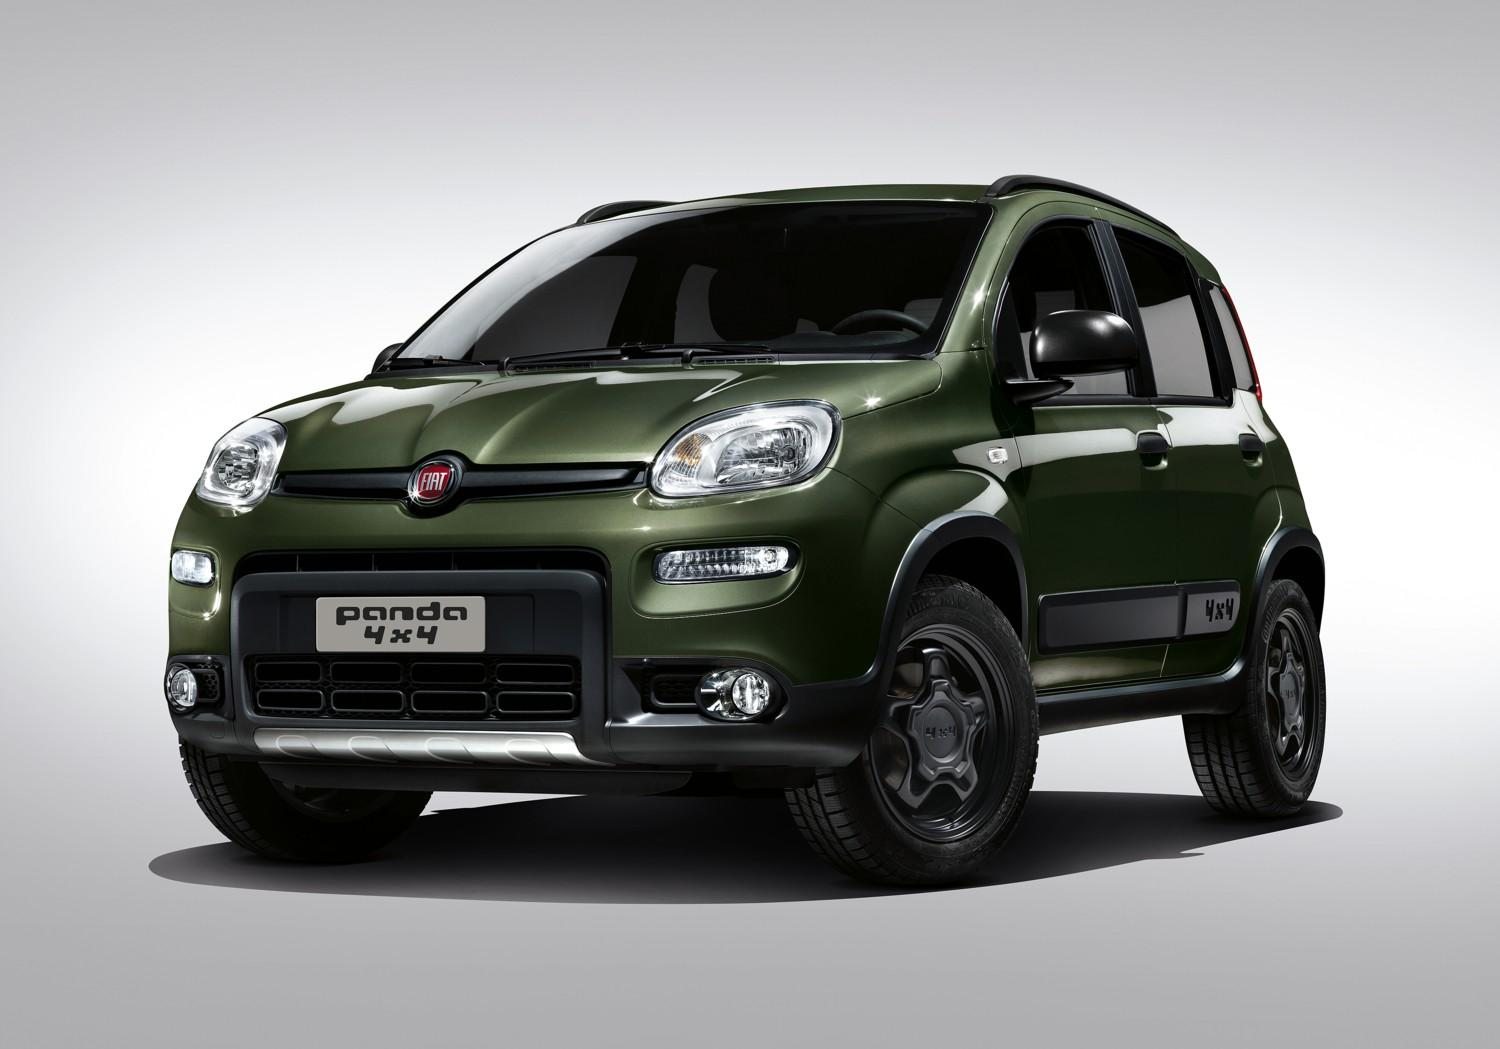 nuove fiat panda city cross e 4x4 foto tgcom24. Black Bedroom Furniture Sets. Home Design Ideas